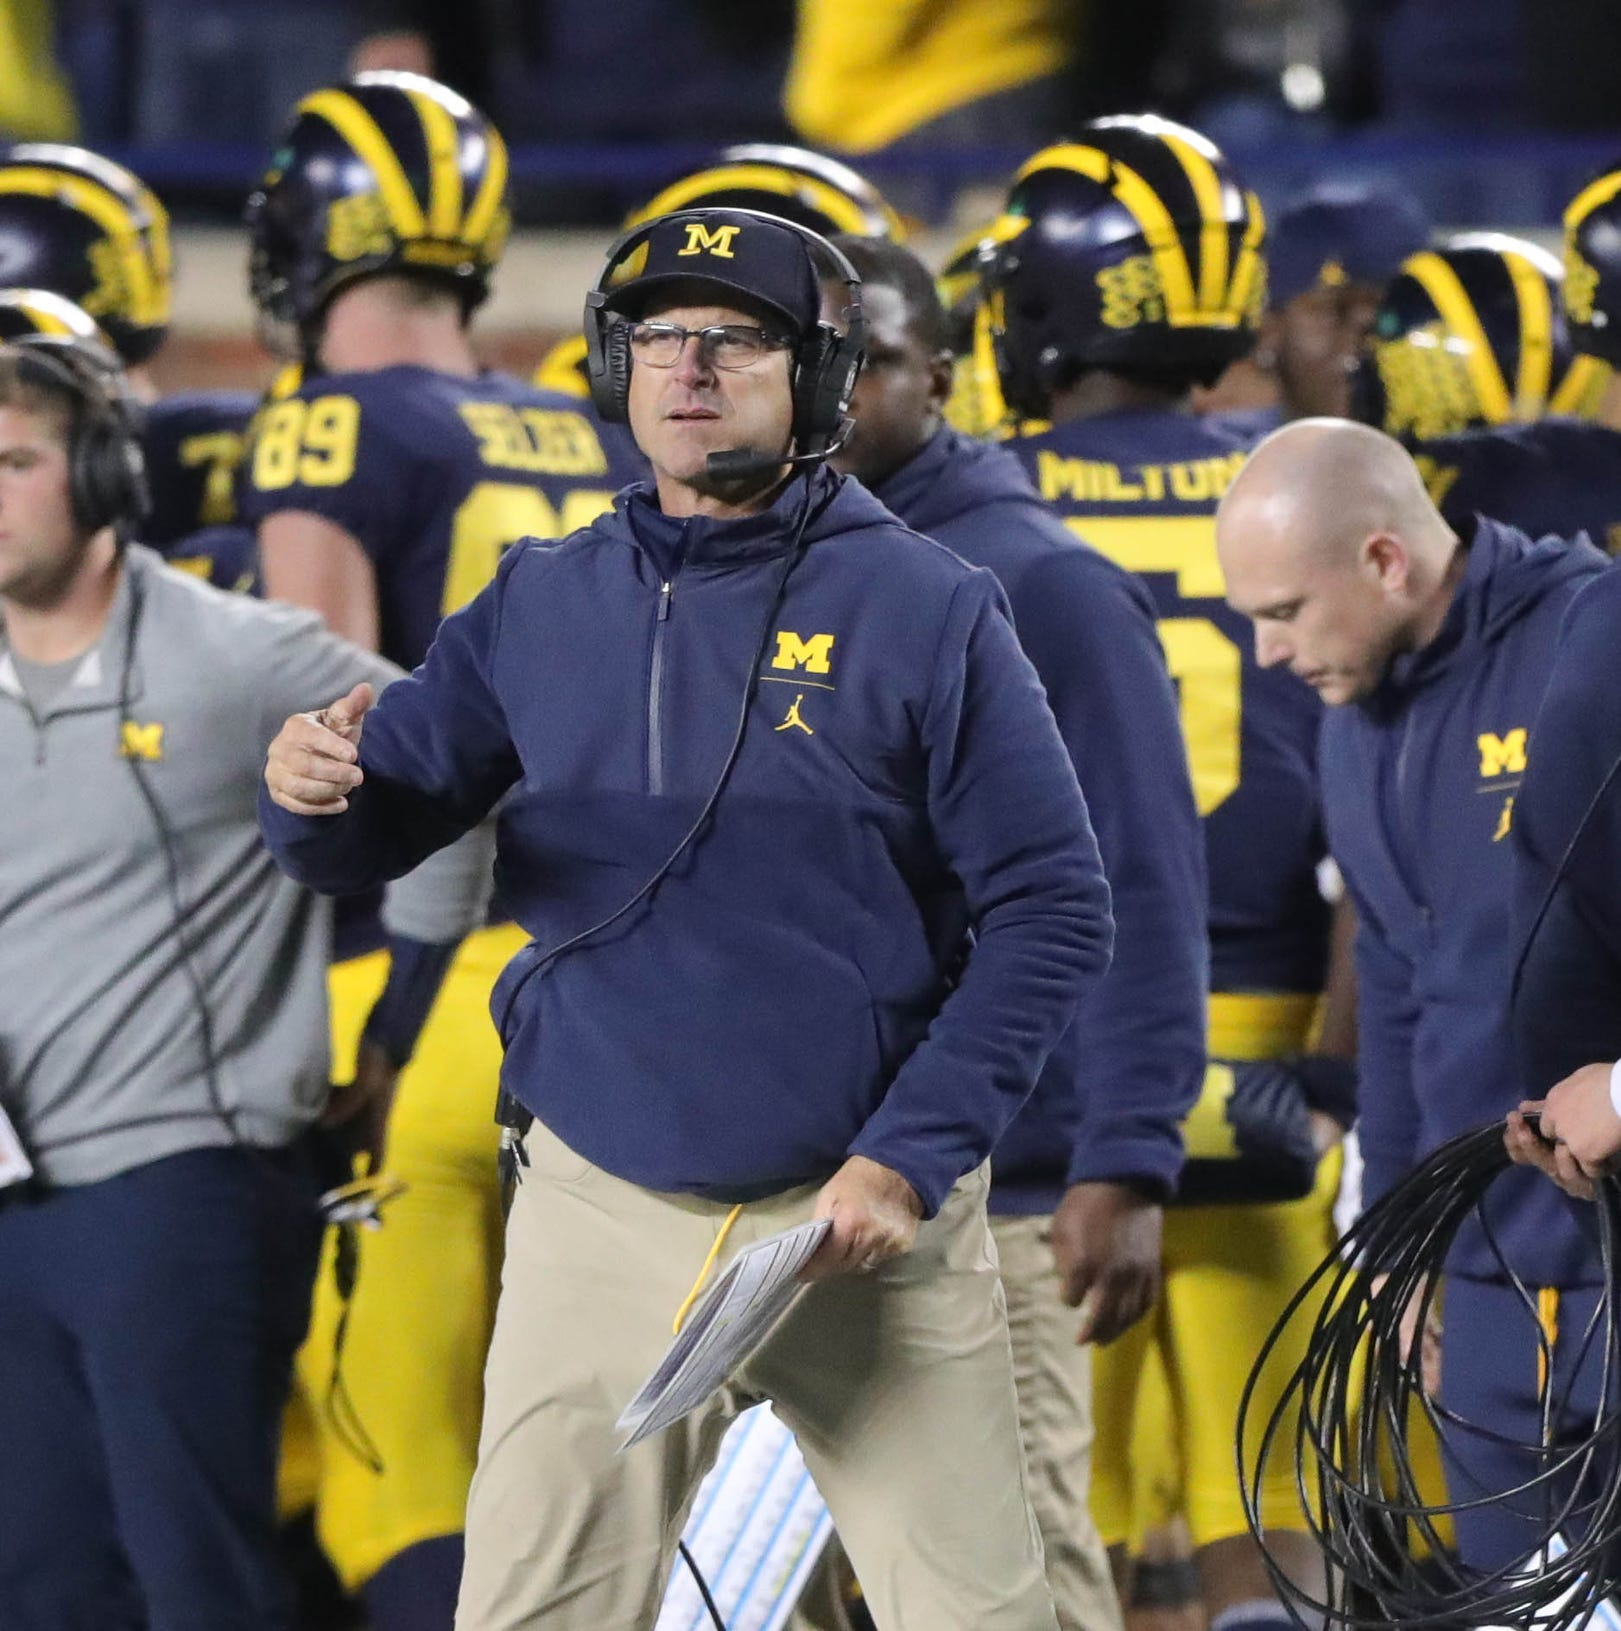 Michigan's Jim Harbaugh has no excuses. He must beat MSU on road.